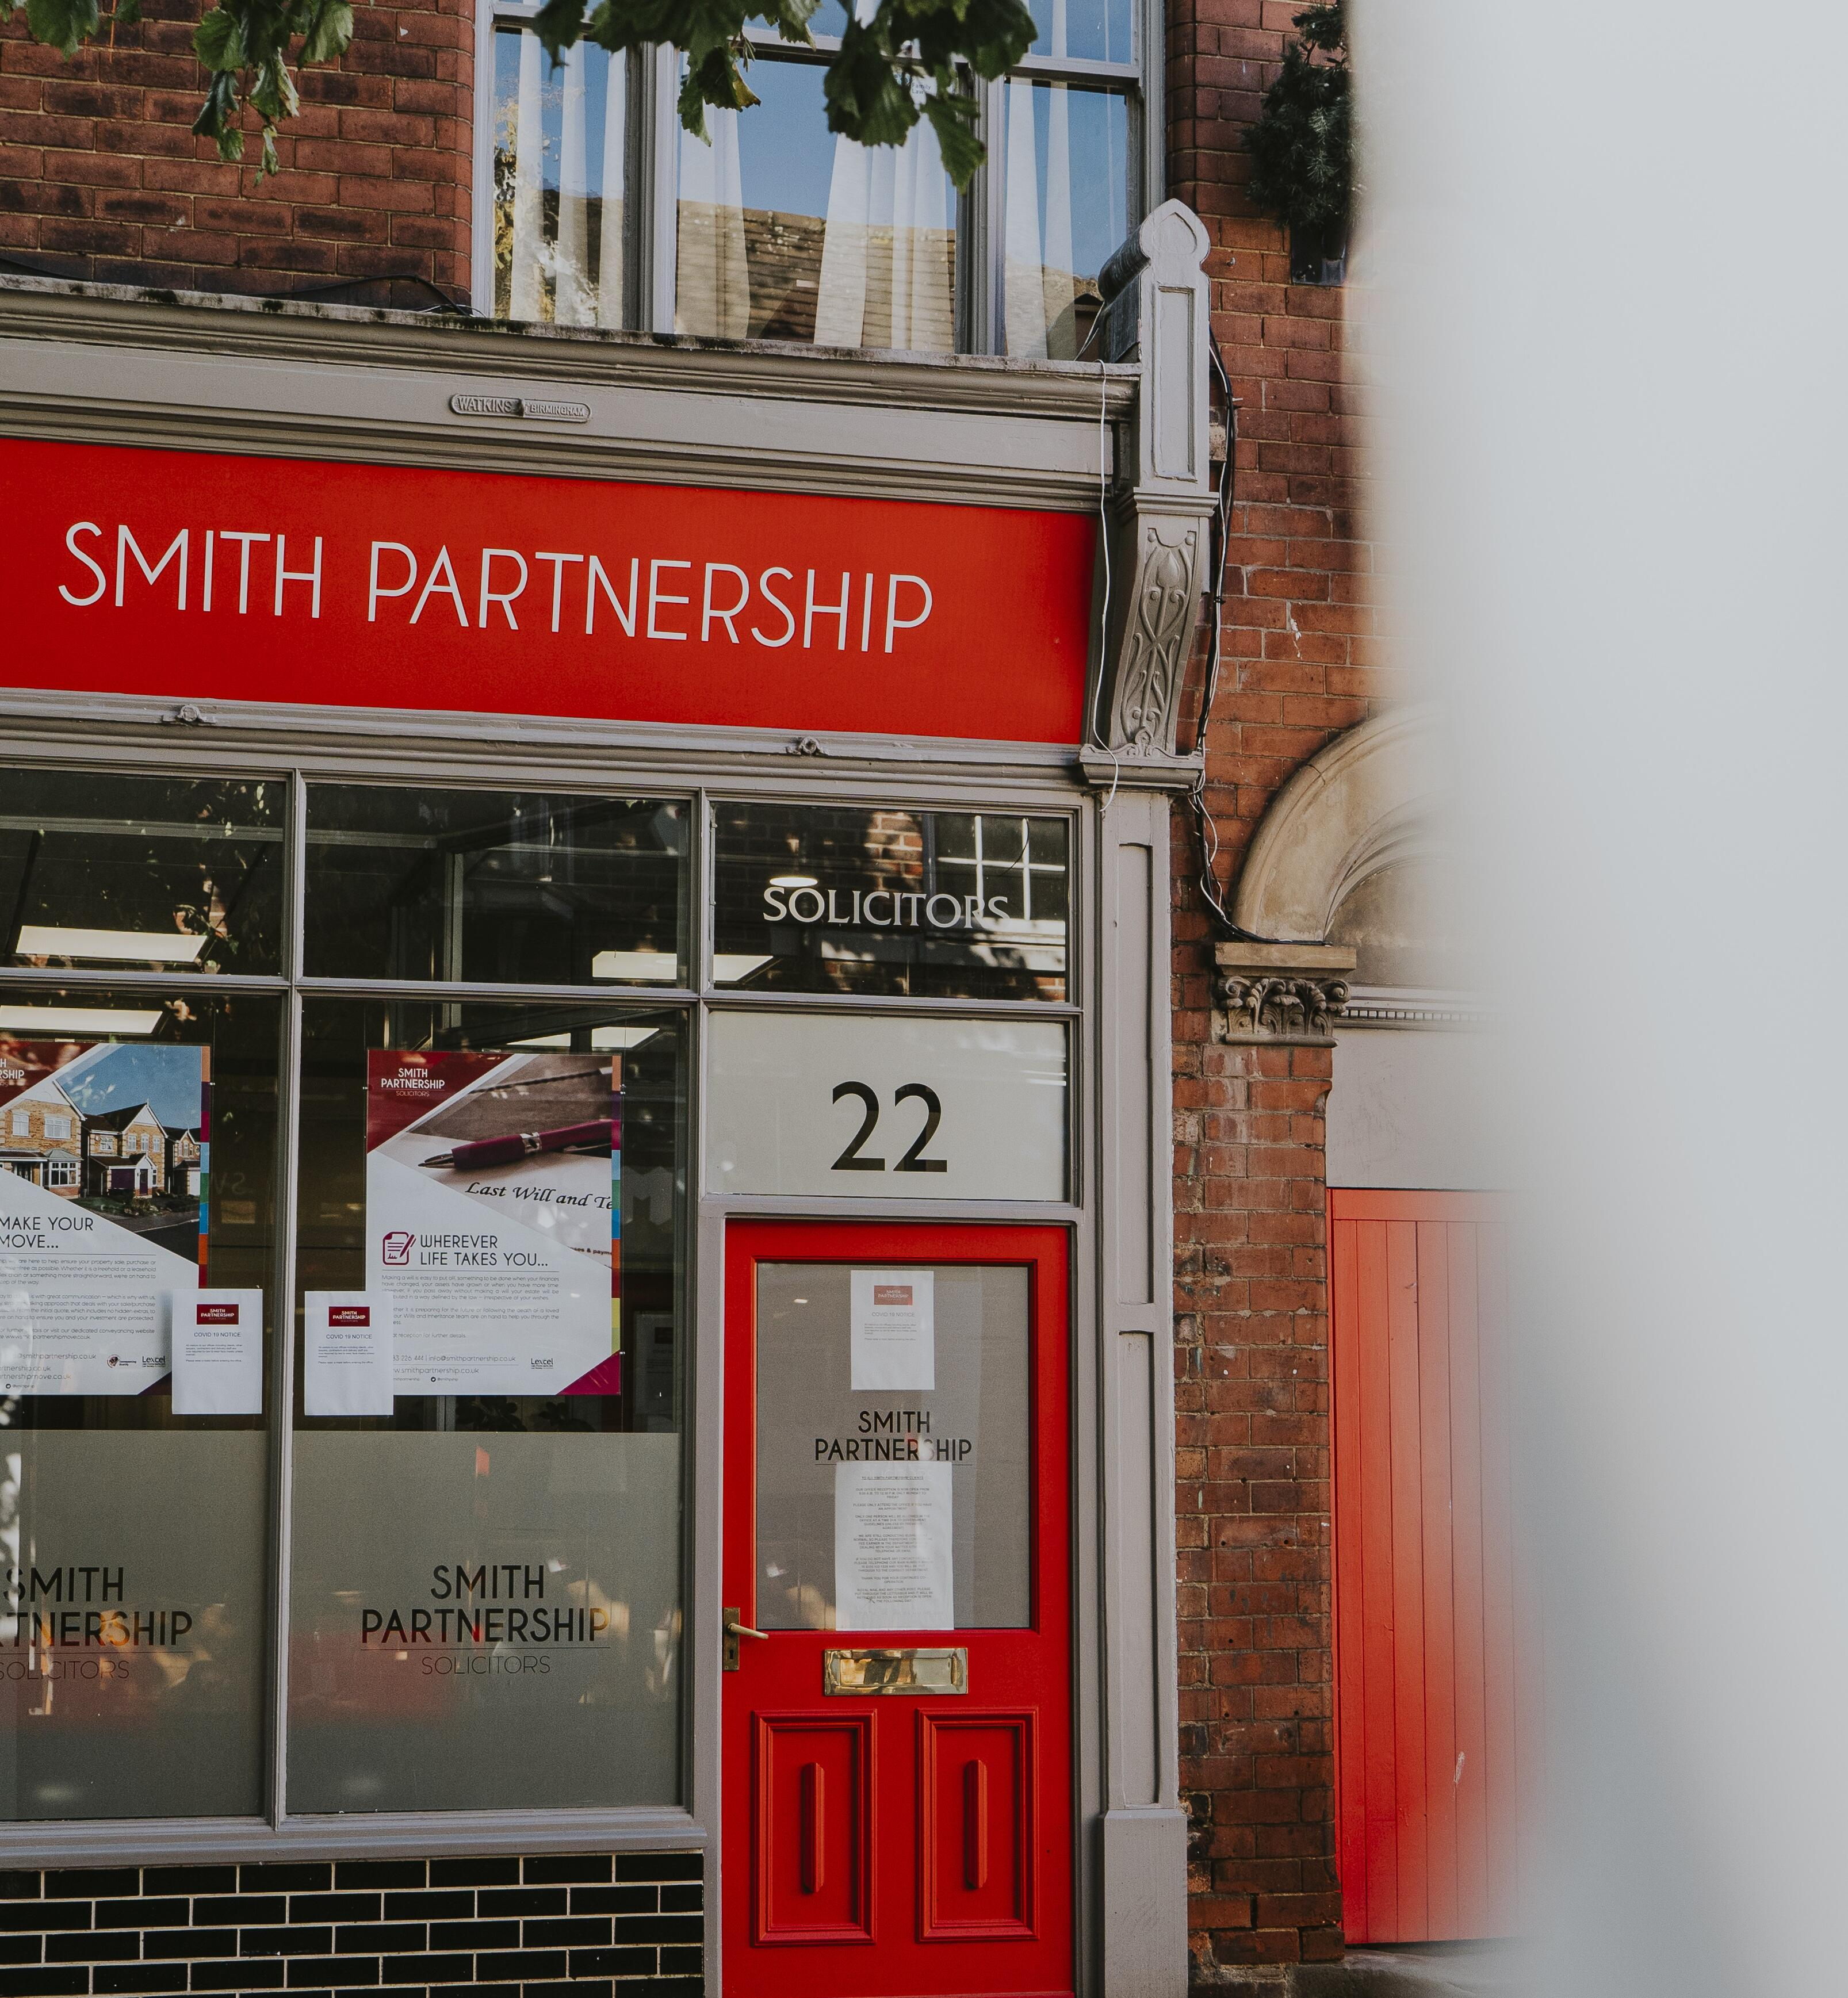 Solicitors in Swadlincote, SMITH PARTNERSHIP SOLICITORS